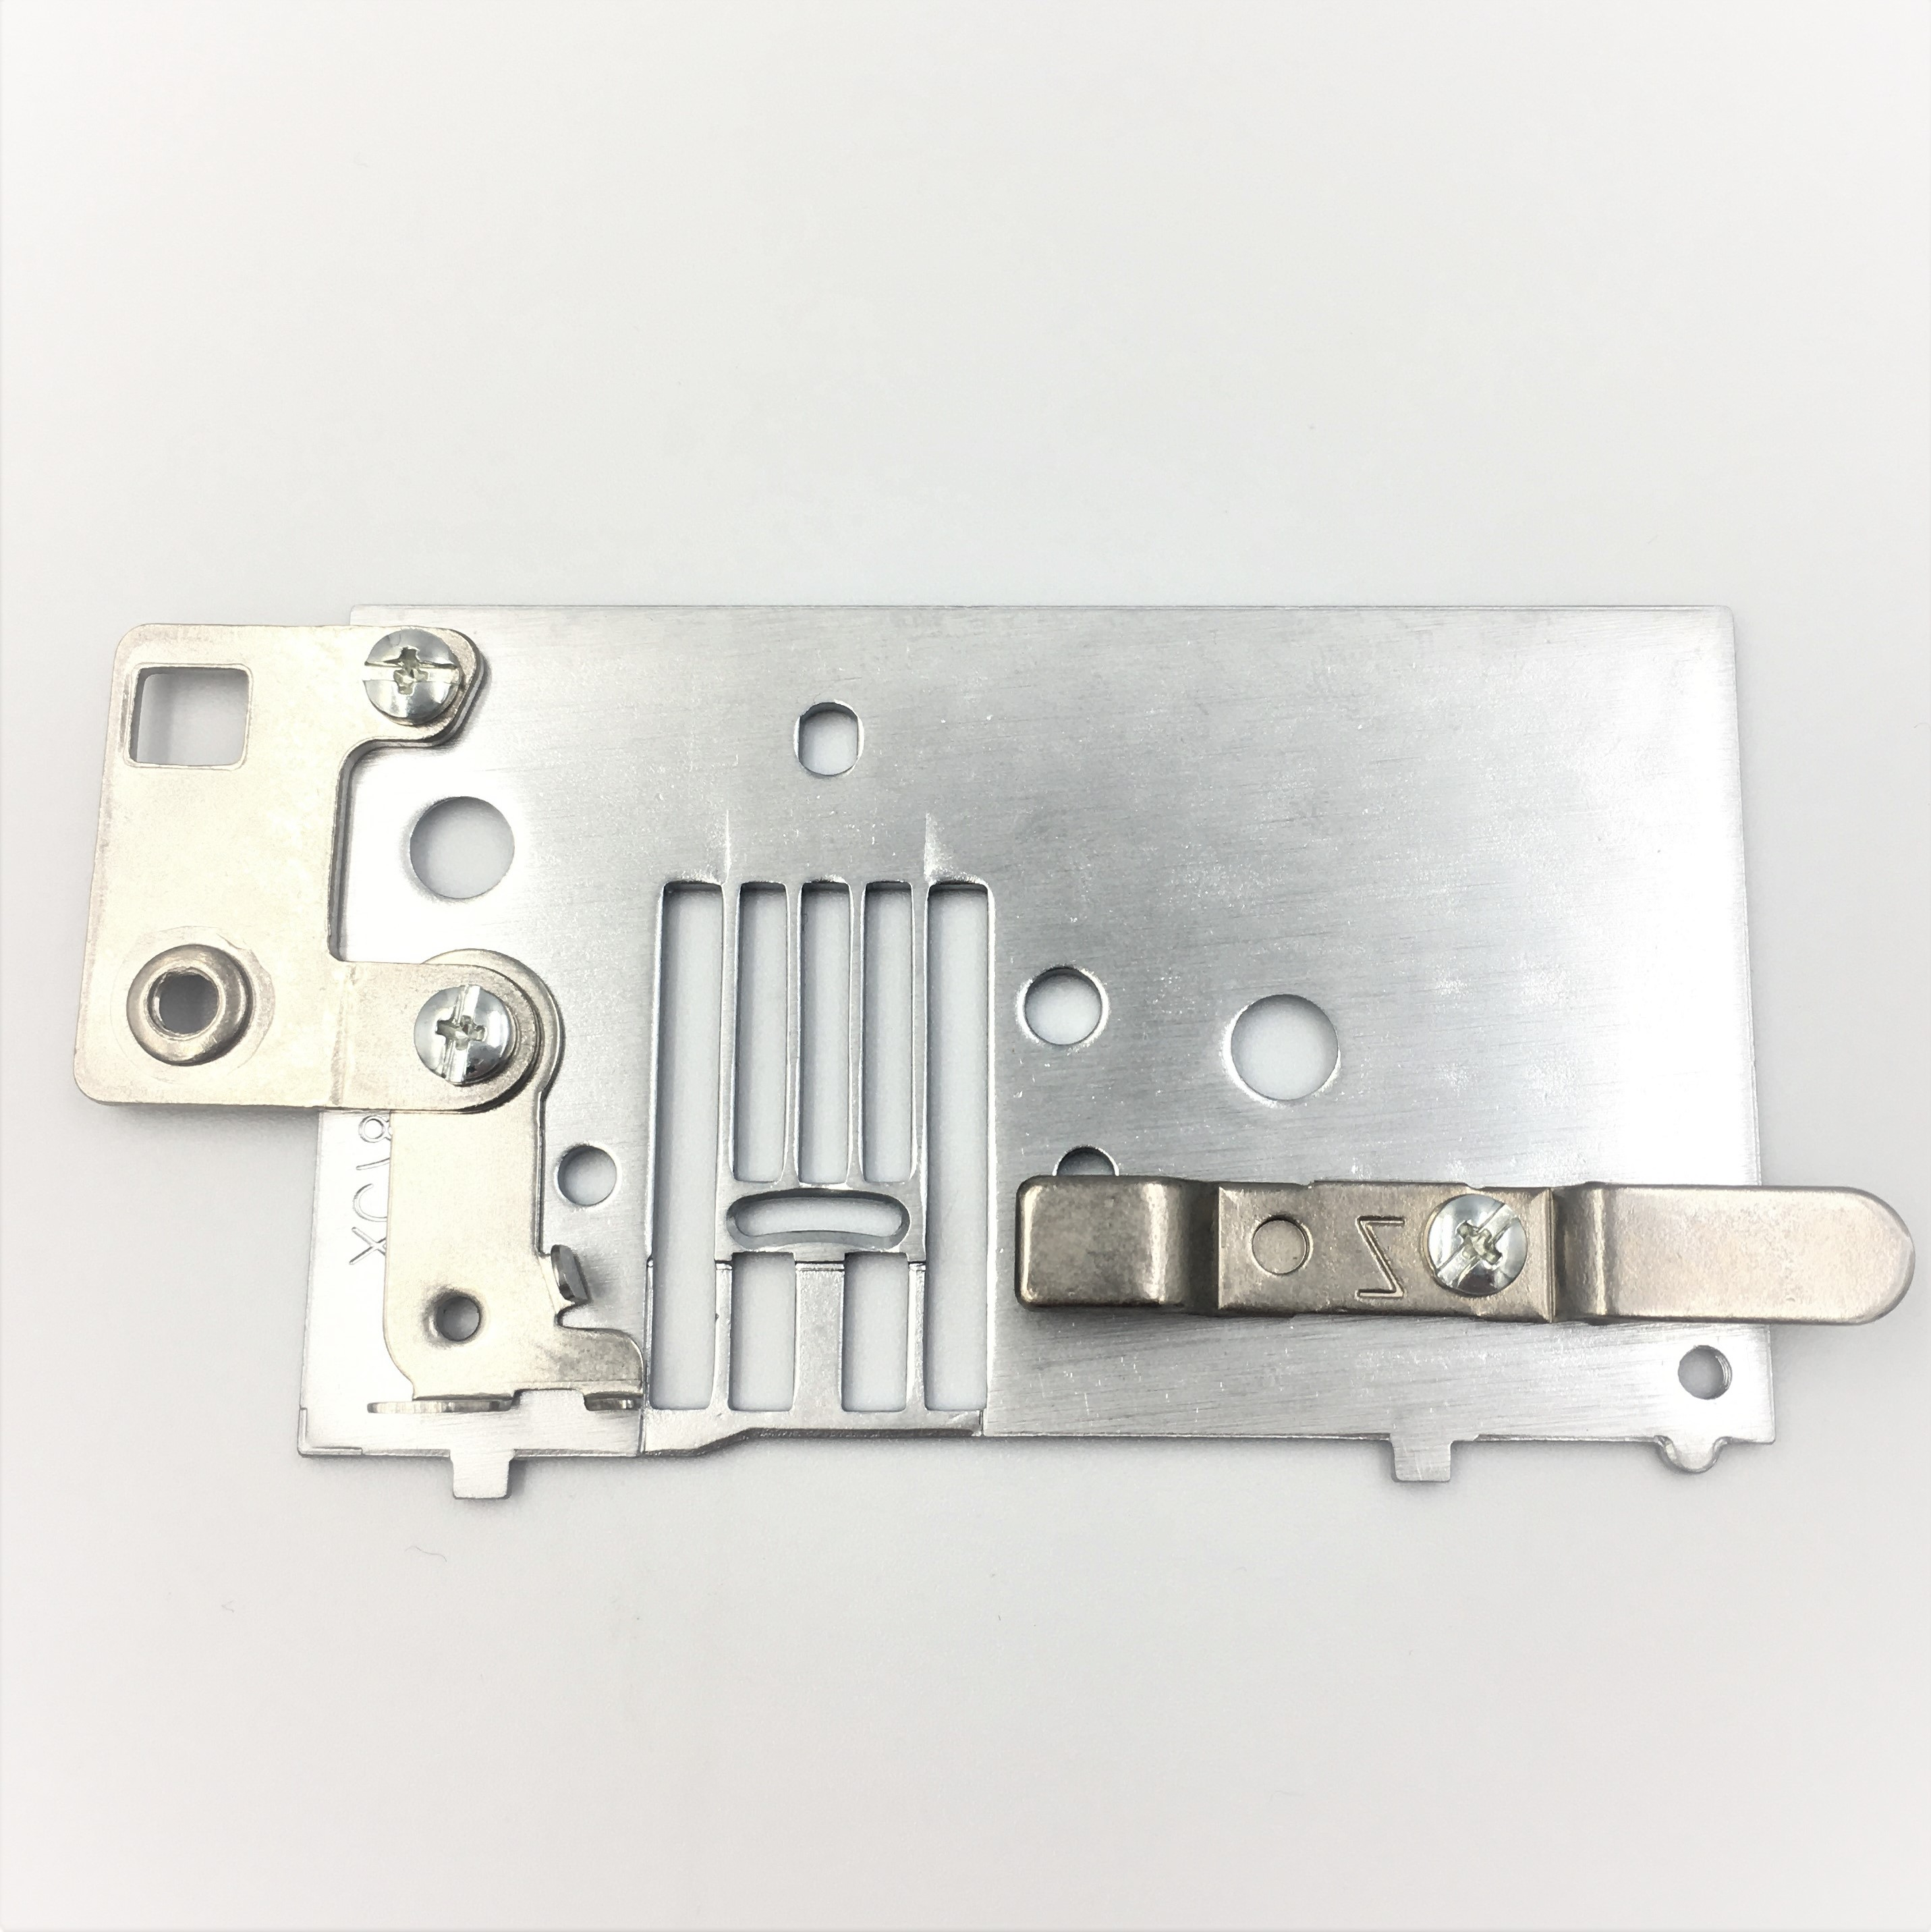 Needle Plate 'A' Assembly - XC9727251